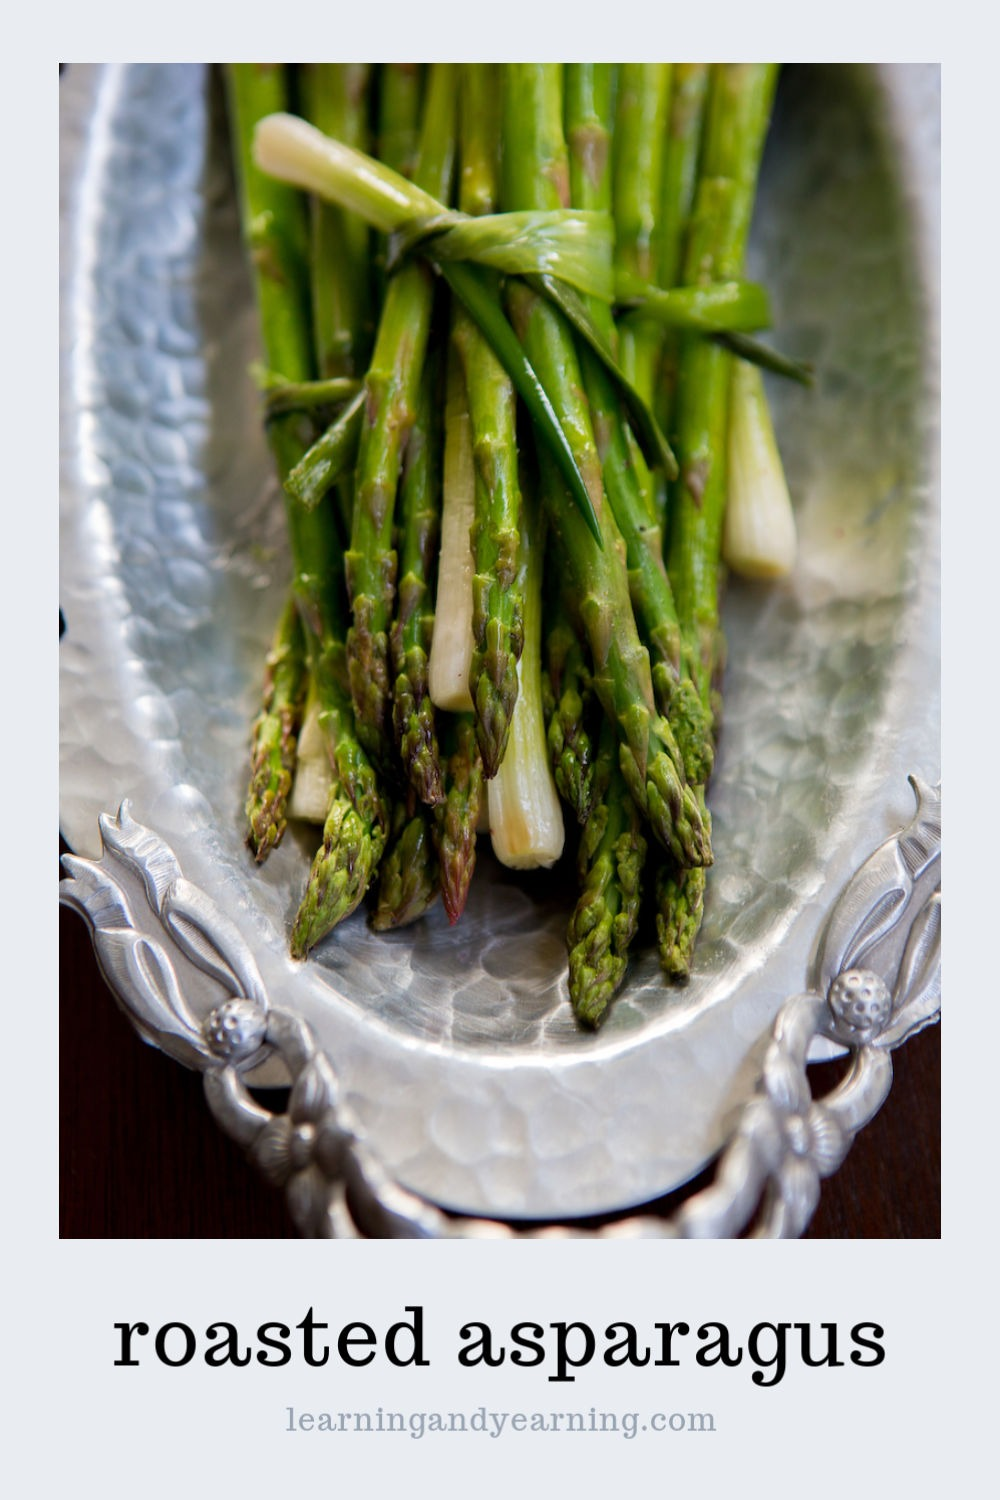 Roasted asparagus recipe.